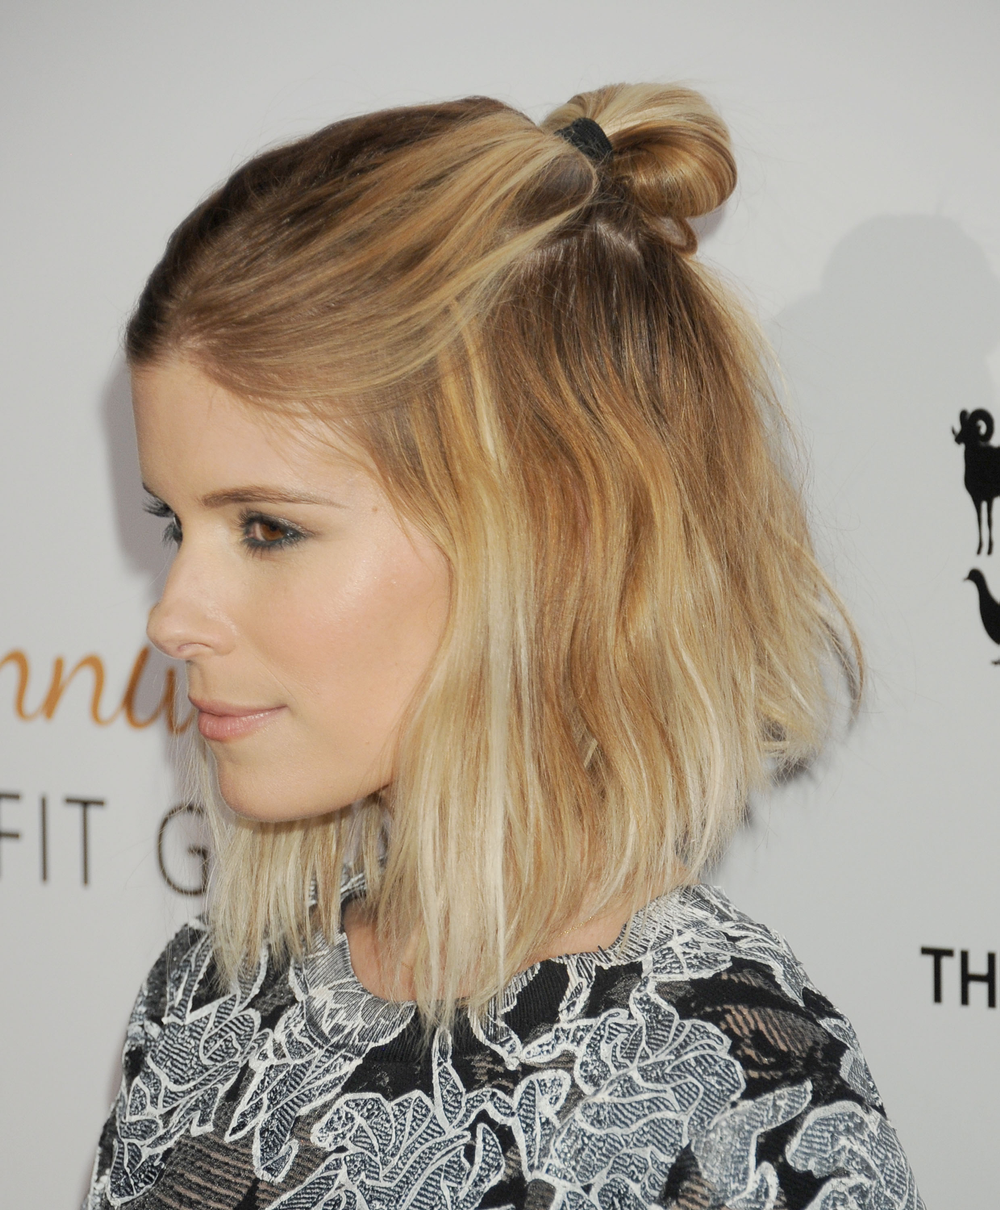 Kate Mara rocks the look at the Humane Society of the United States 60th Anniversary Benefit Gala in March 2014.